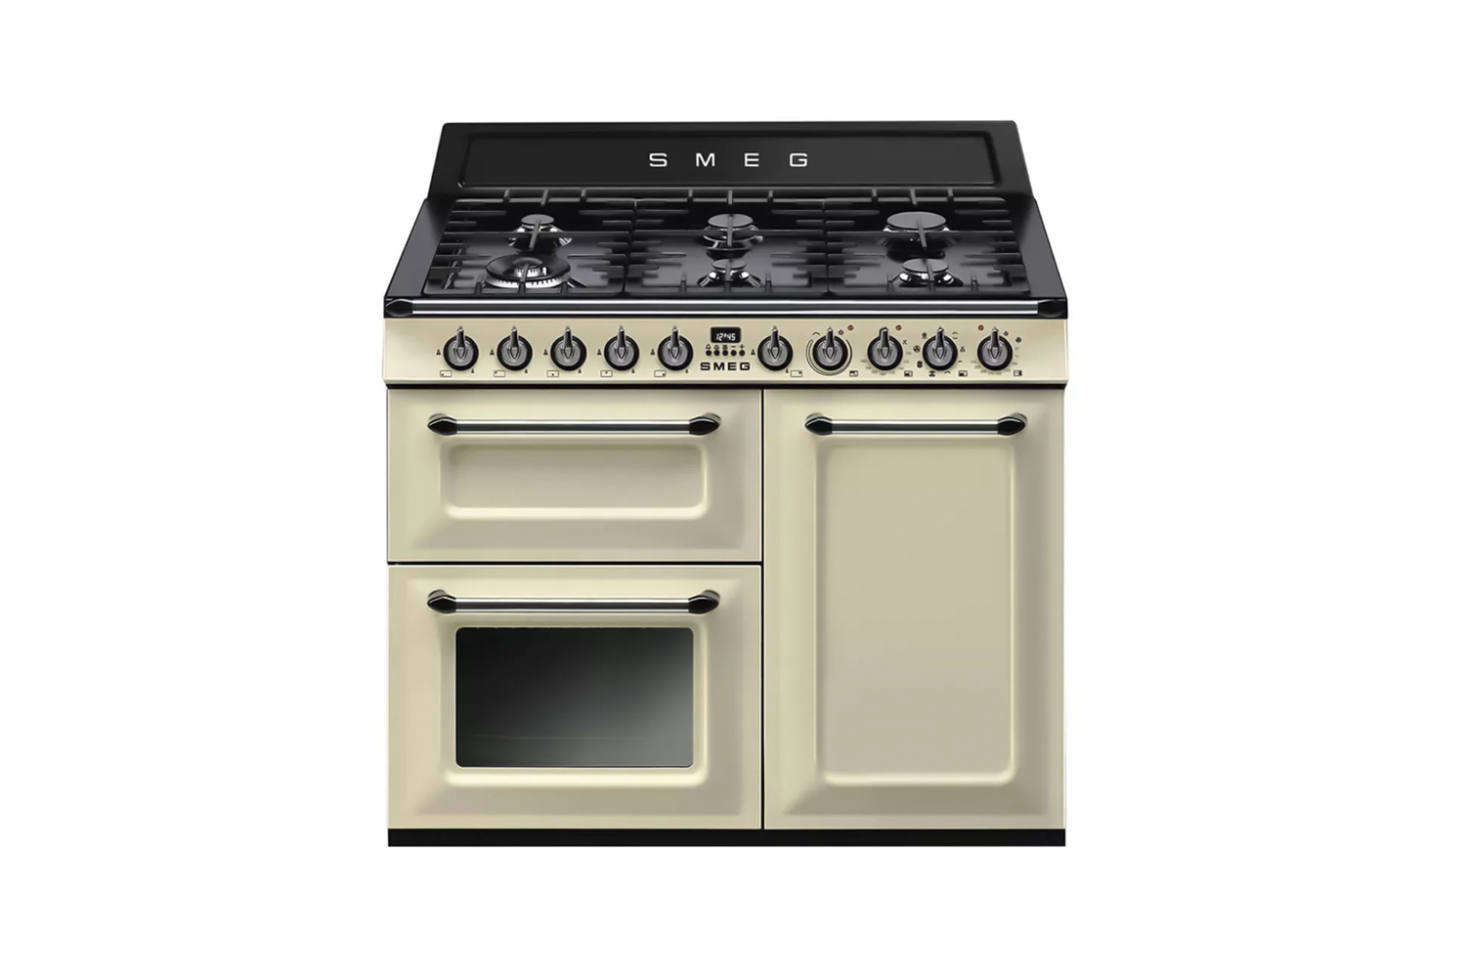 Smeg's Victoria Cooker, shown in cream, is the company's offering of retro-style ranges. The cookers come in different sizes with several options for oven type and finish available through Smeg.